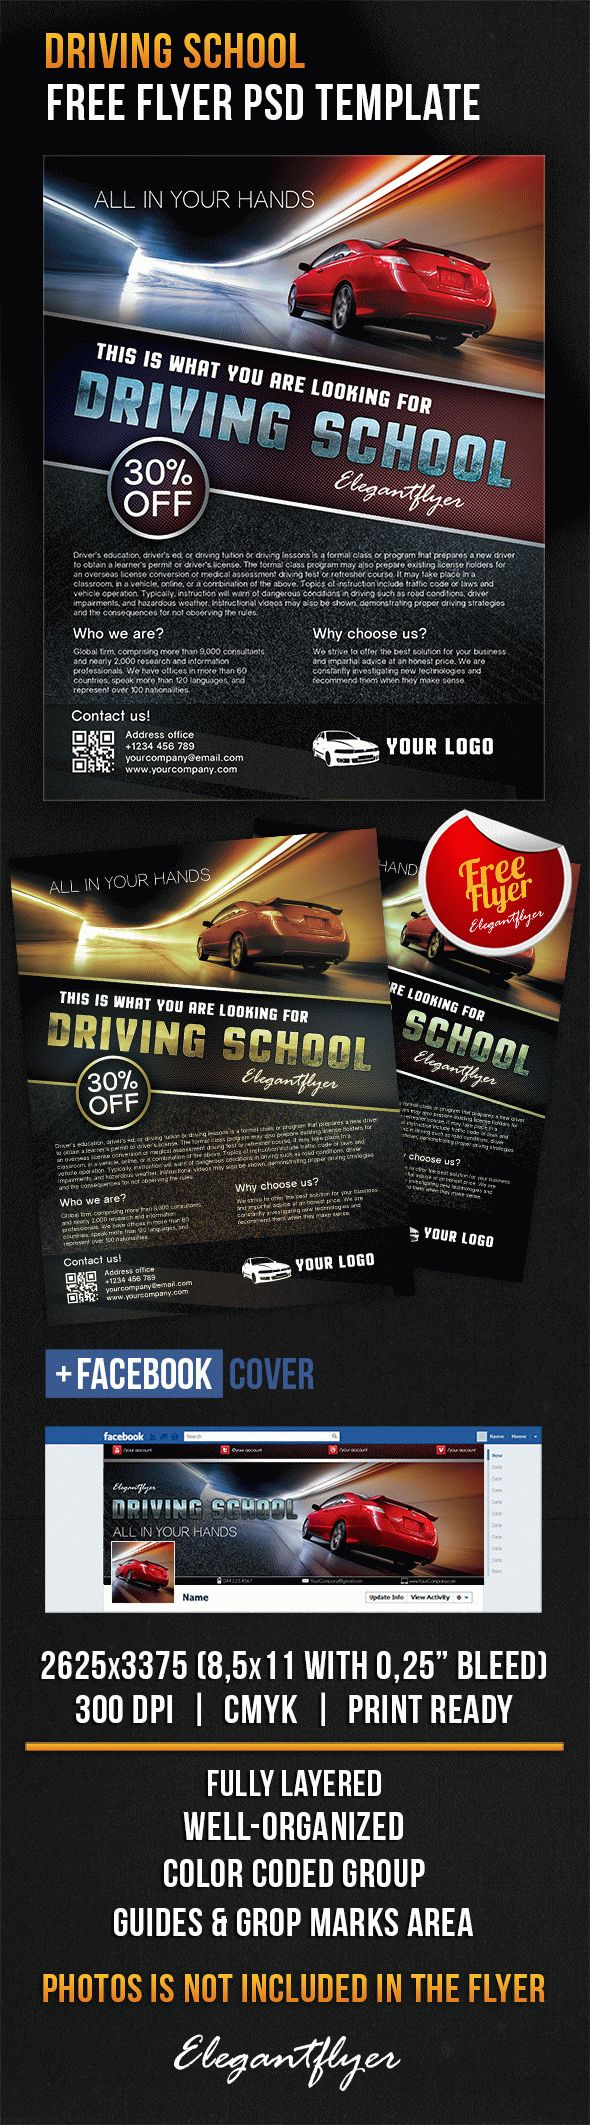 Driving school – Free Flyer PSD Template